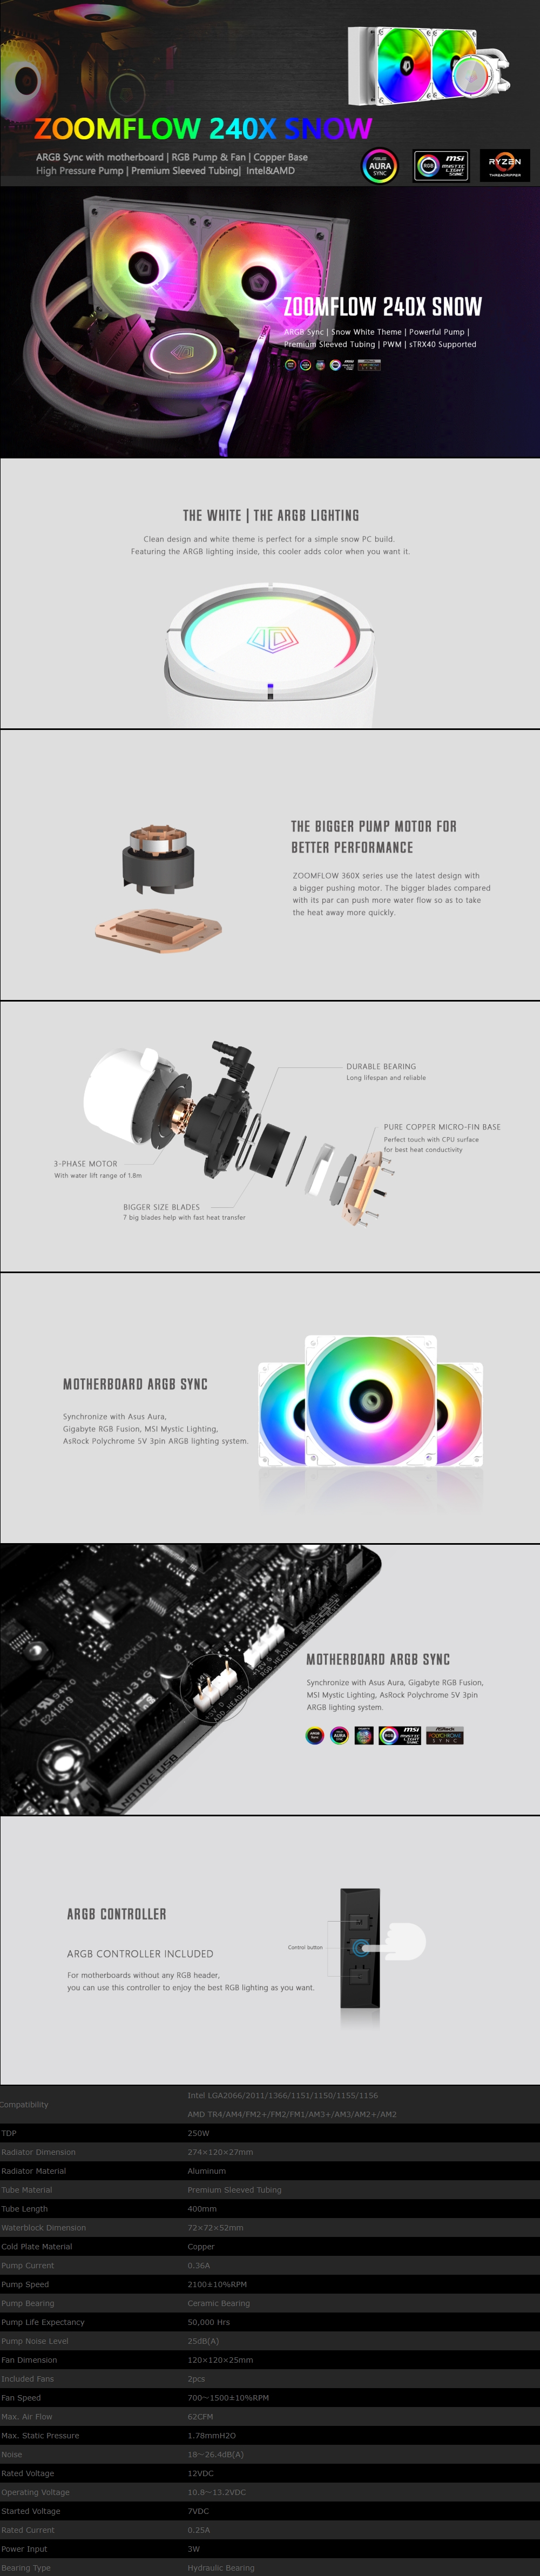 A large marketing image providing additional information about the product ID-COOLING ZoomFlow 240X SNOW RGB AIO CPU Liquid Cooler - Additional alt info not provided